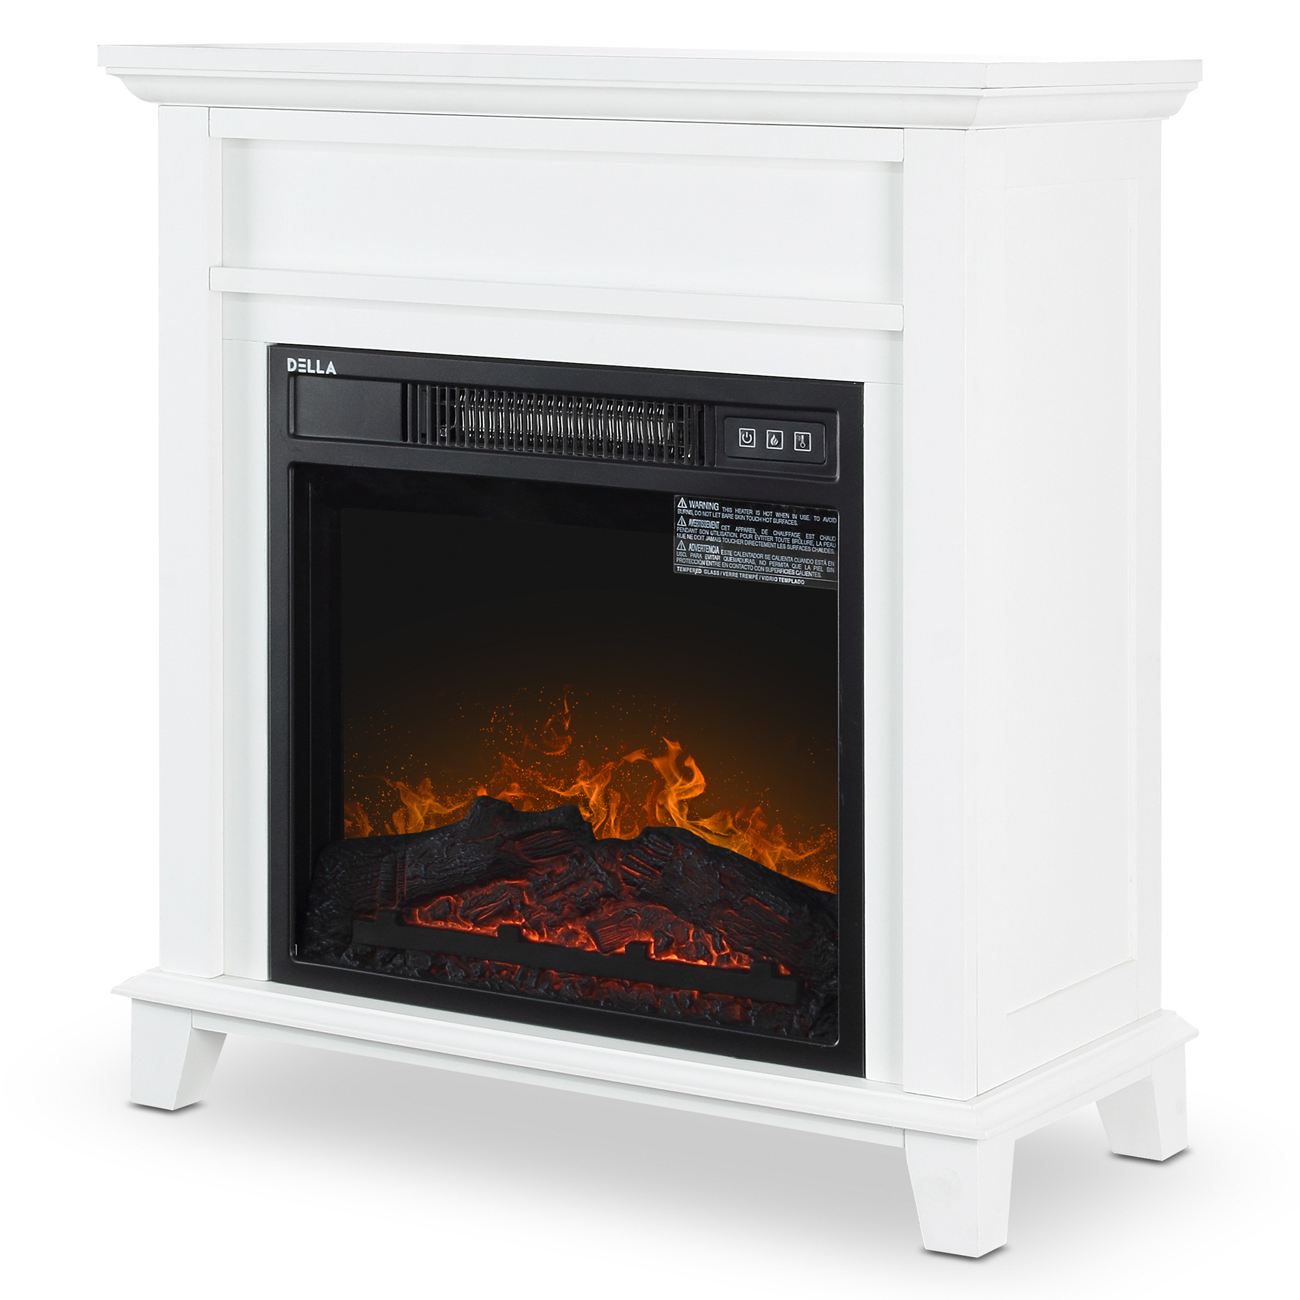 """DELLA 18"""" Freestanding White Wood Finish Electric Fireplace Stove Heater"""